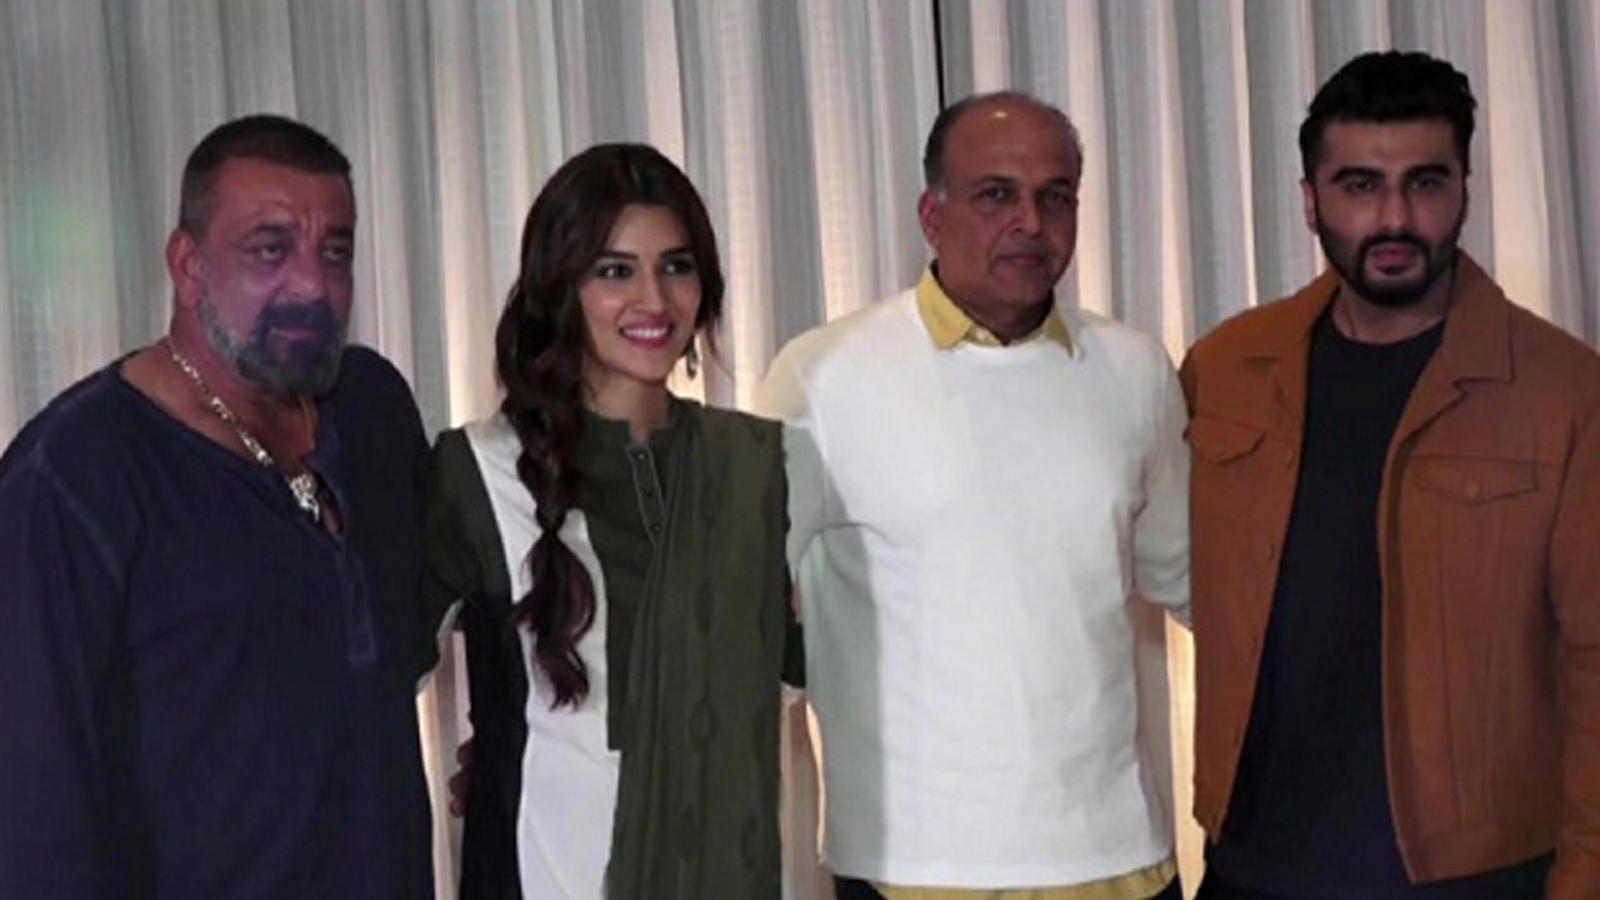 Sanjay Dutt, Arjun Kapoor, Kriti Sanon are busy promoting 'Panipat'